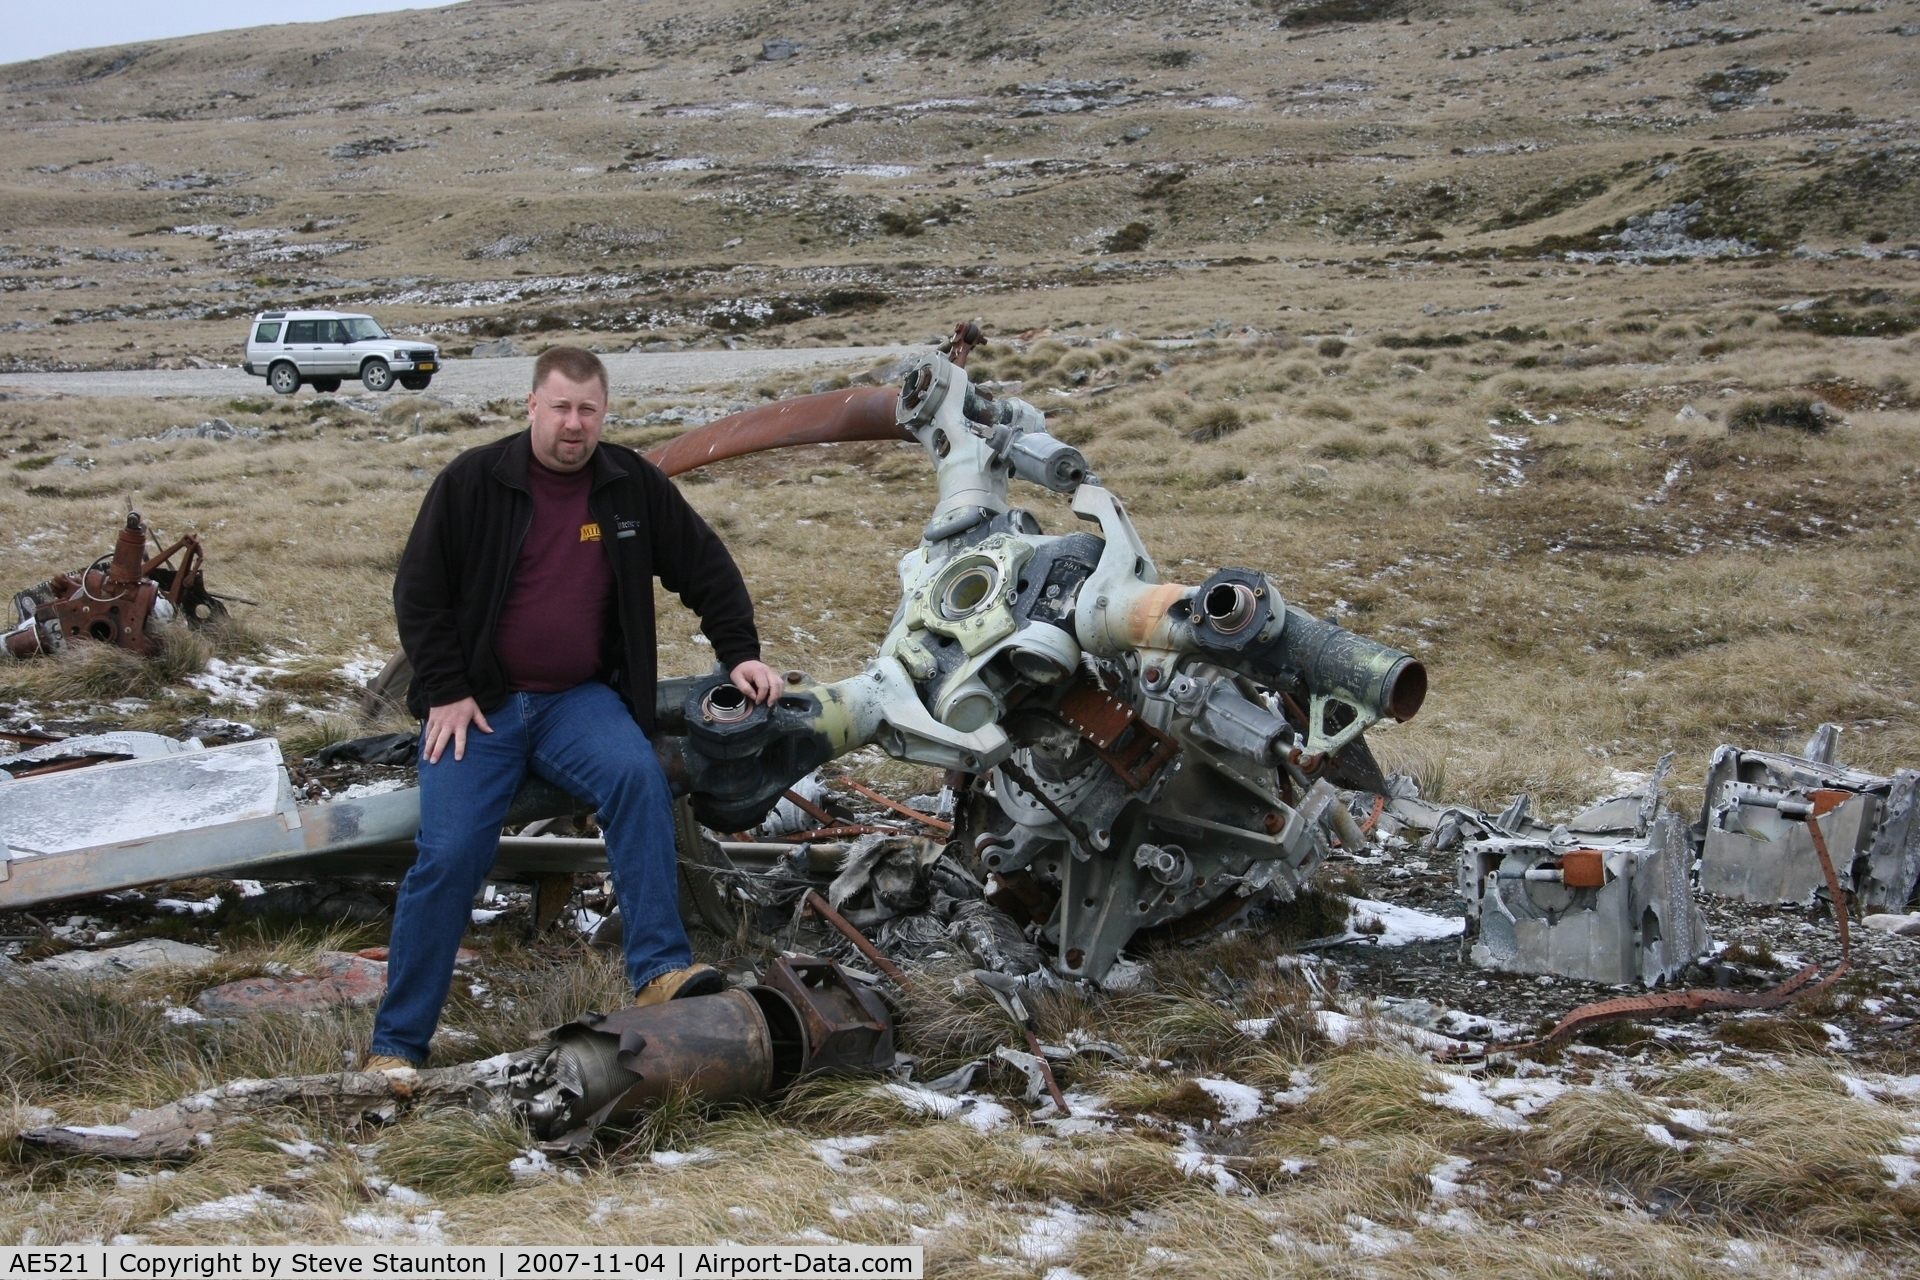 AE521, Boeing Vertol CH-47C Chinook C/N B-789/CG-102, This is me sitting on the wreck of BV Chinook CH-47C of the Argentine AF located at the foot of Mount Kent, Falkland Island. This aircraft was destroyed during the 1982 Falklands Conflict. Notice the snow on the ground - yes a cold Spring November day